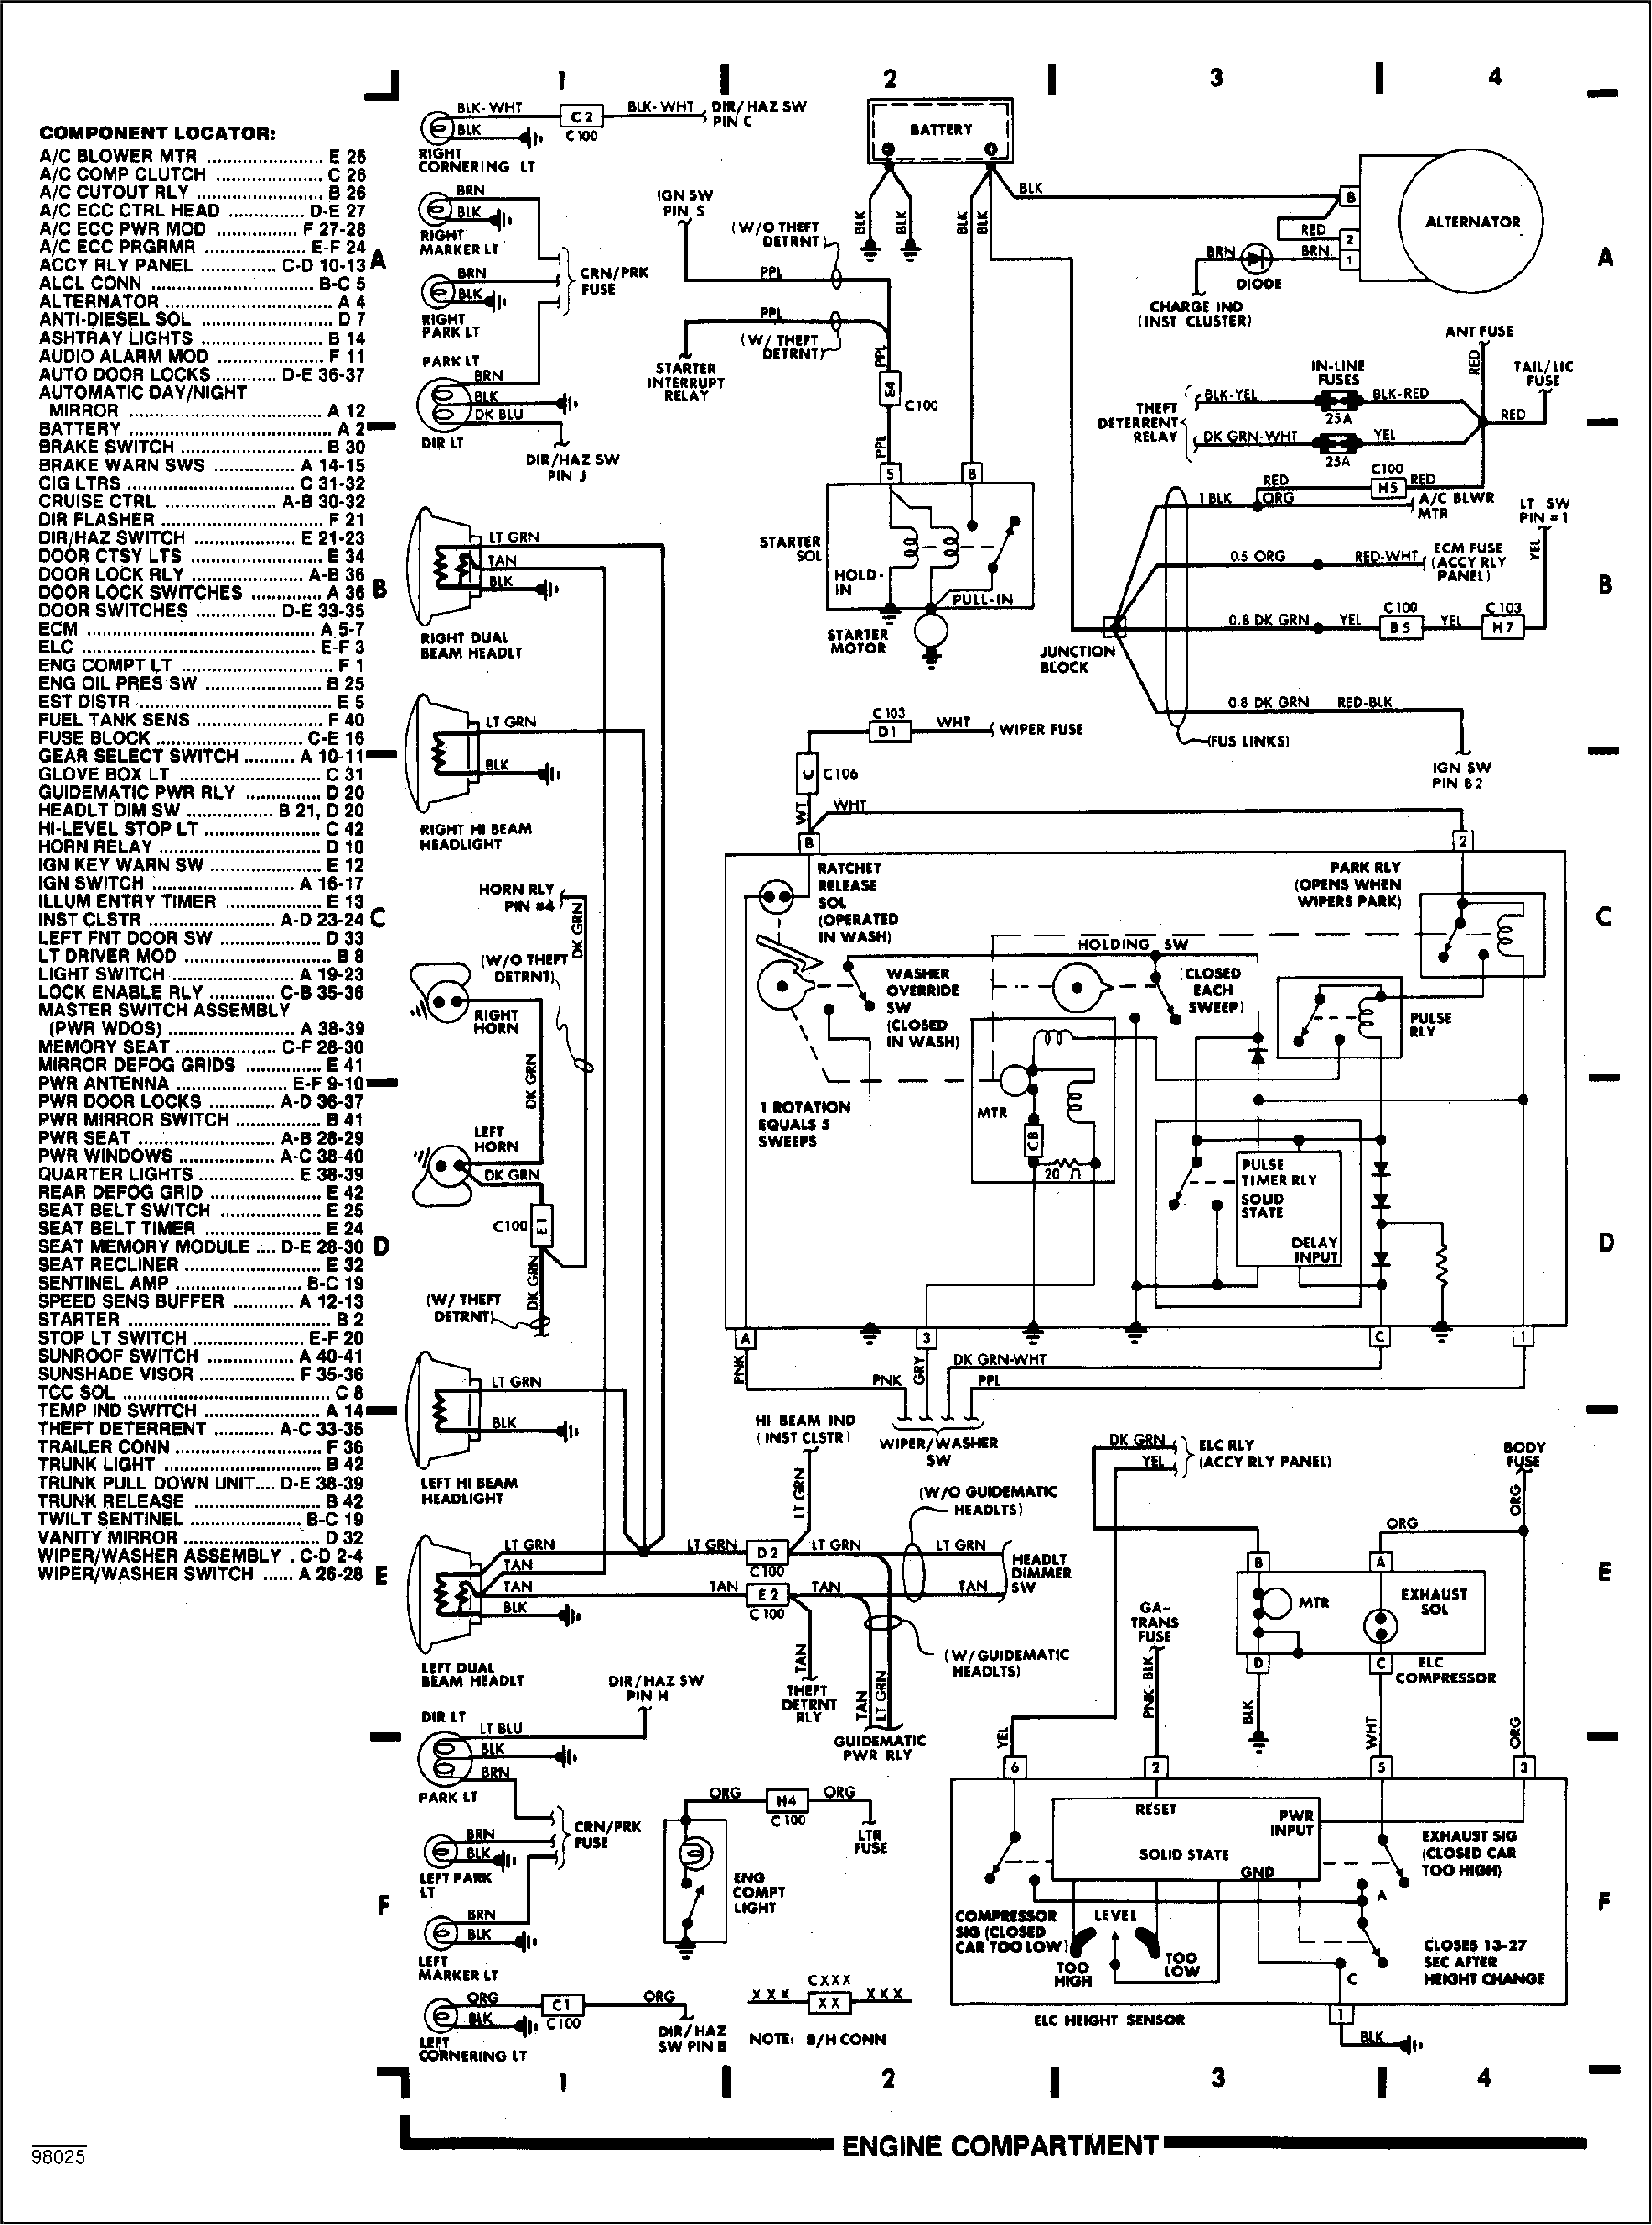 [DIAGRAM] 1991 Cadillac Brougham Wiring Diagram FULL